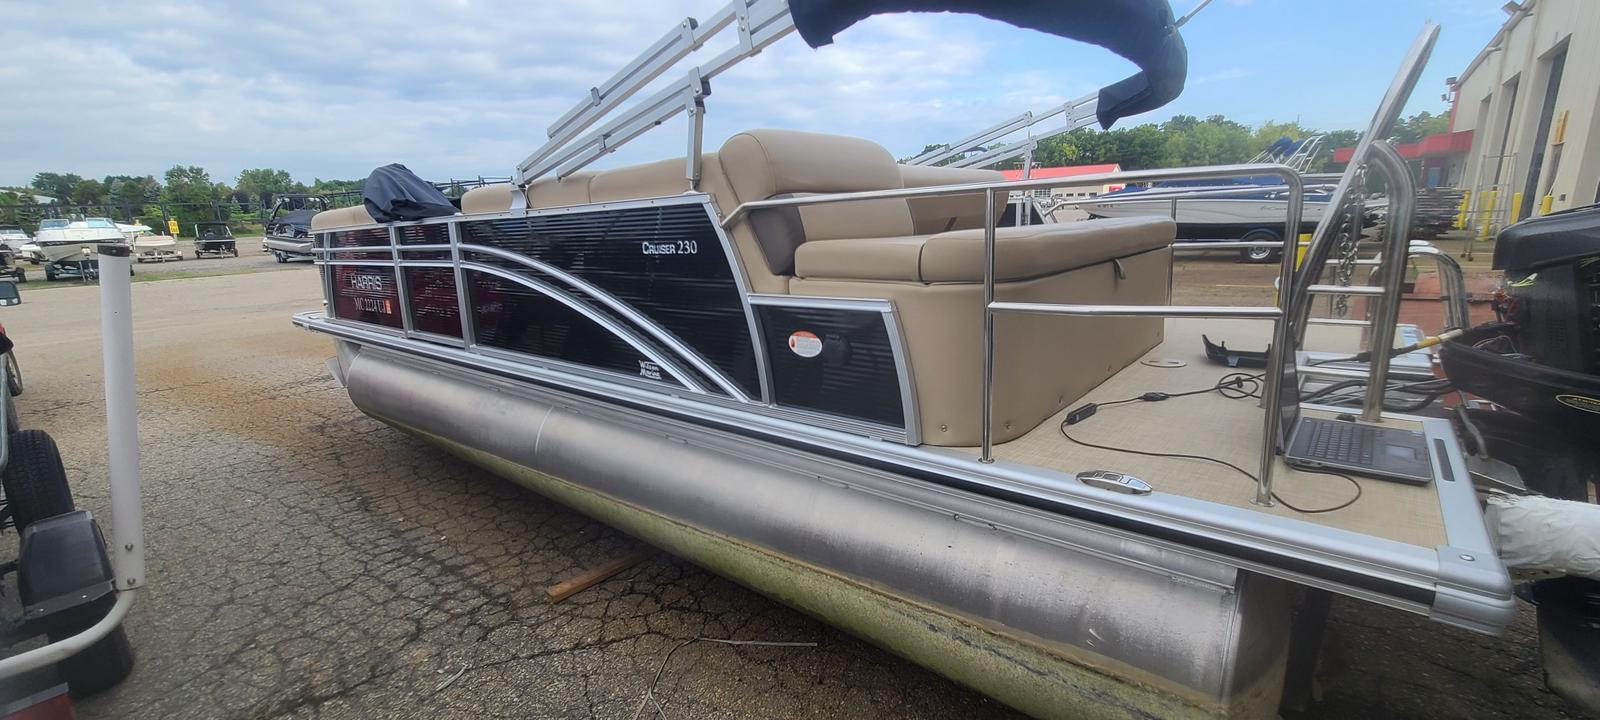 2019 Harris boat for sale, model of the boat is Cruiser 230 & Image # 1 of 10